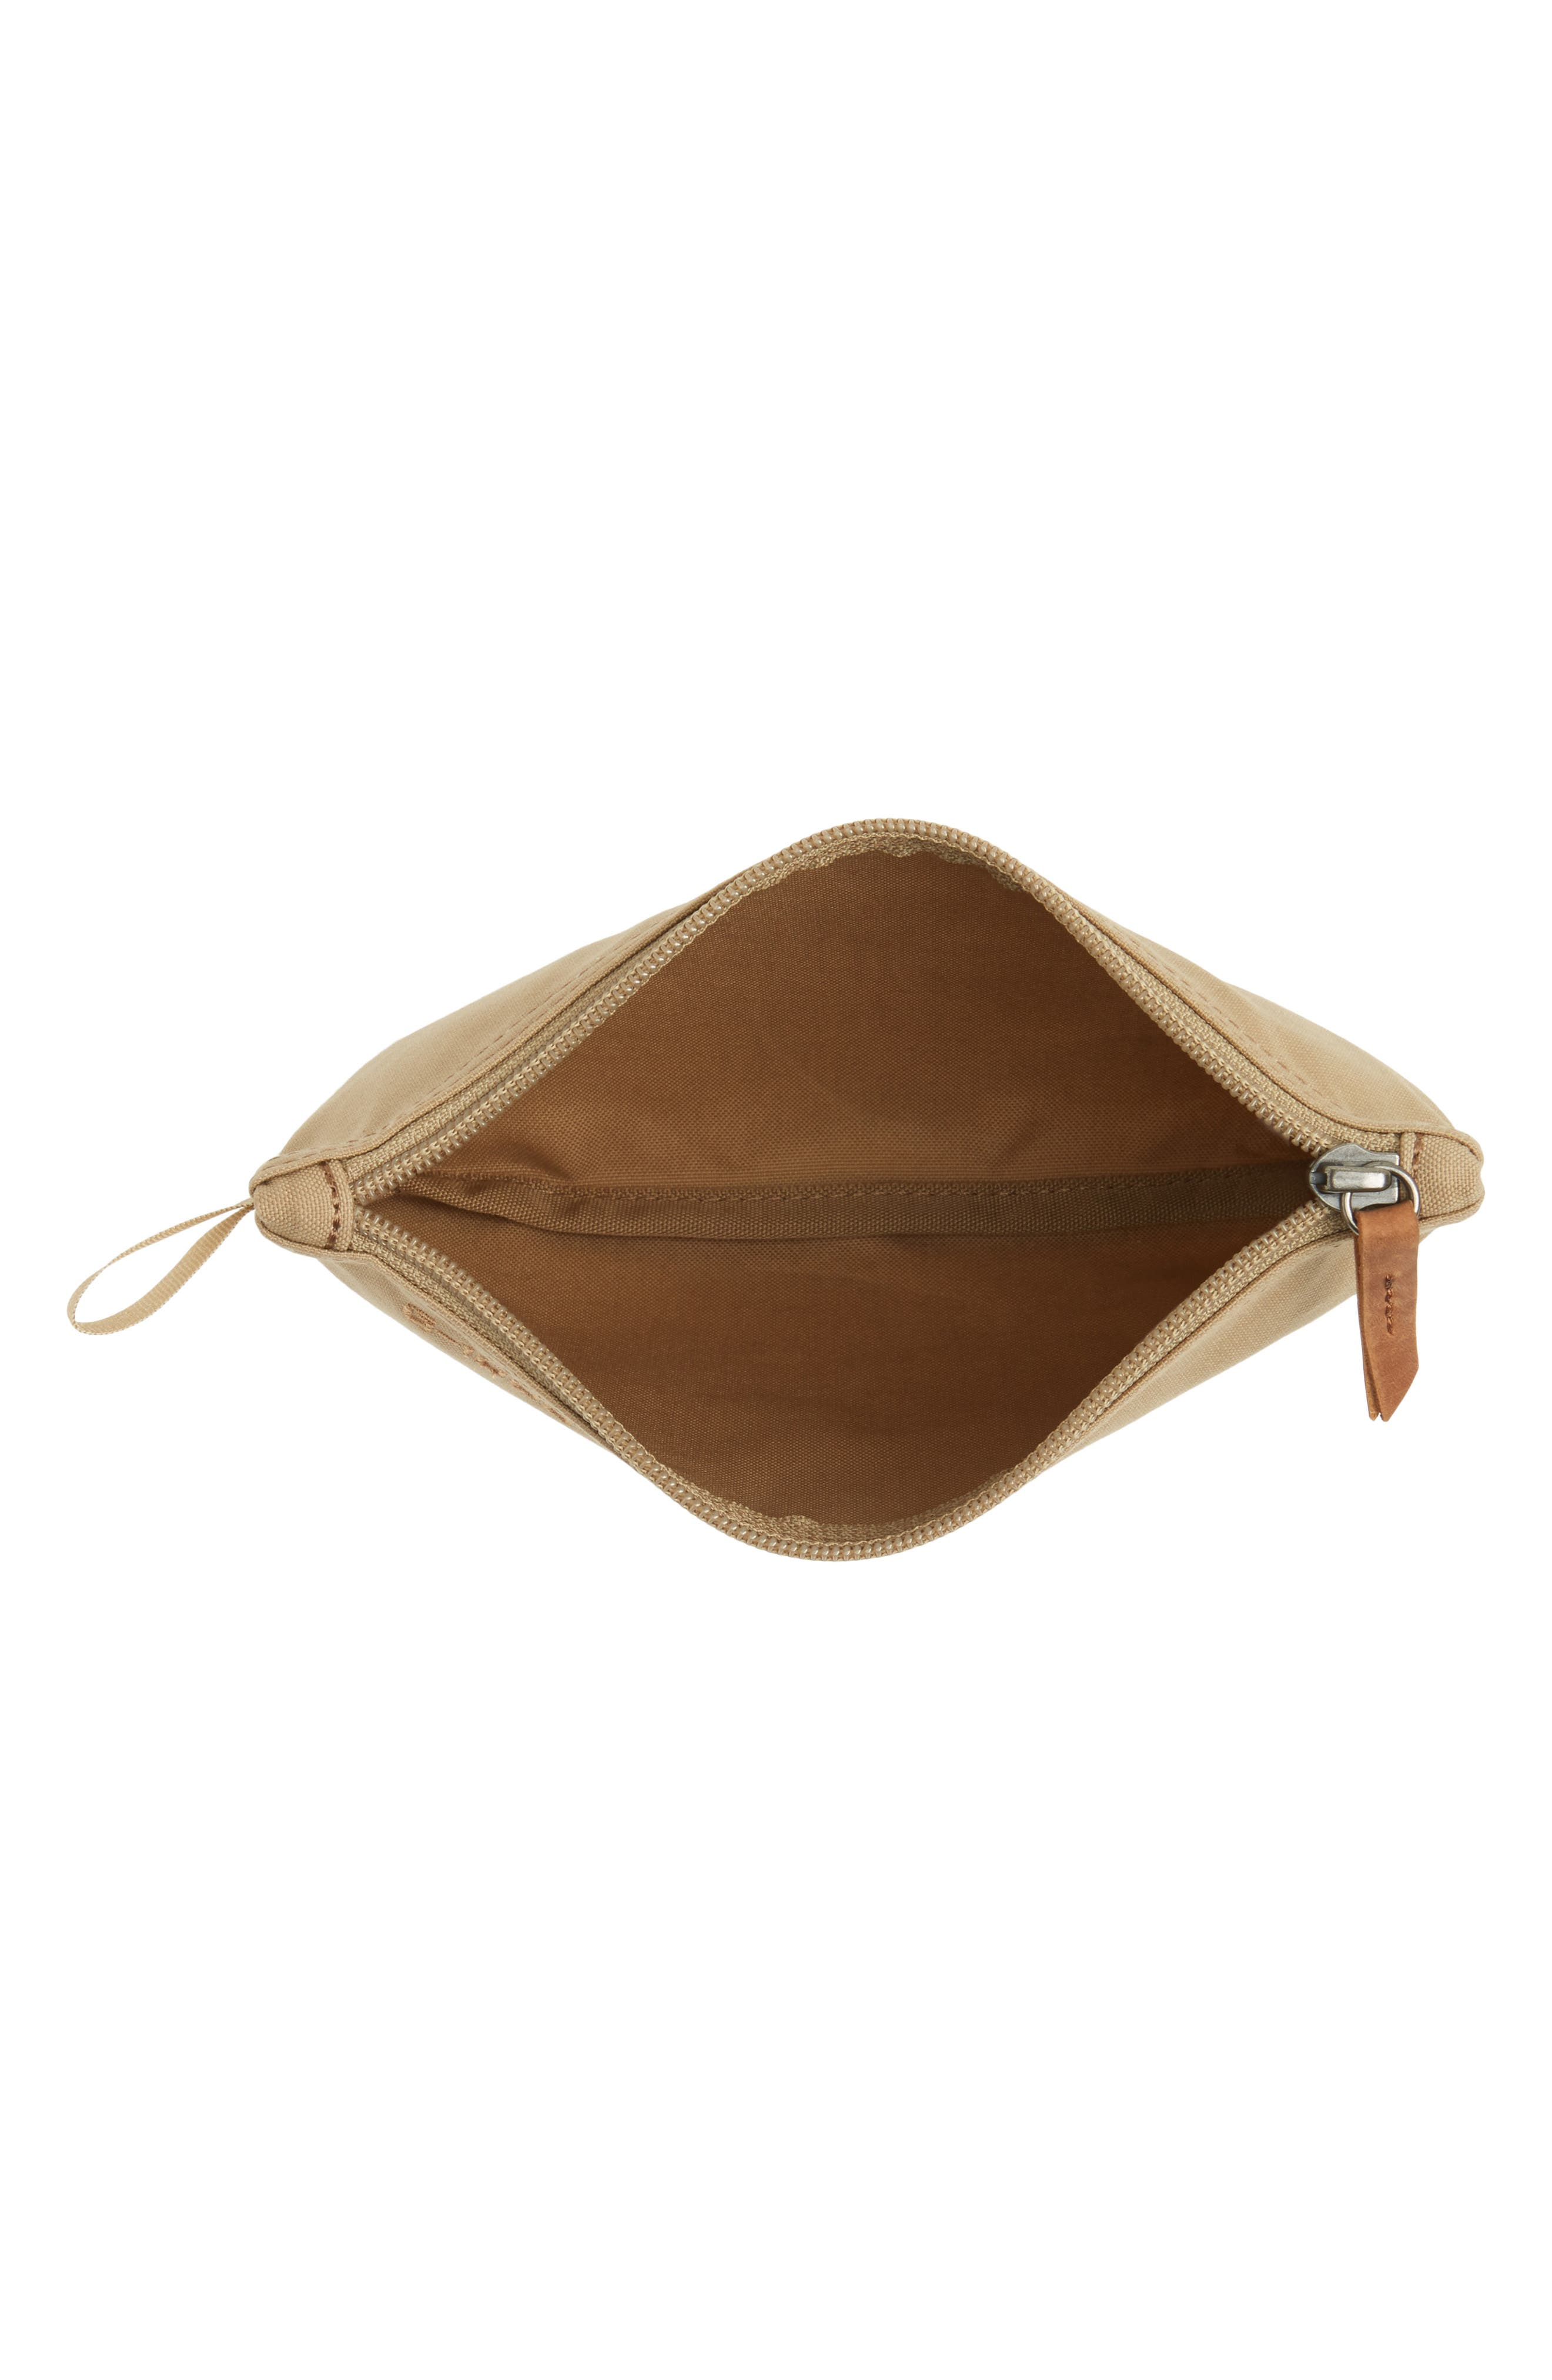 Gear Water-Resistant Pocket Pouch,                             Alternate thumbnail 3, color,                             Sand